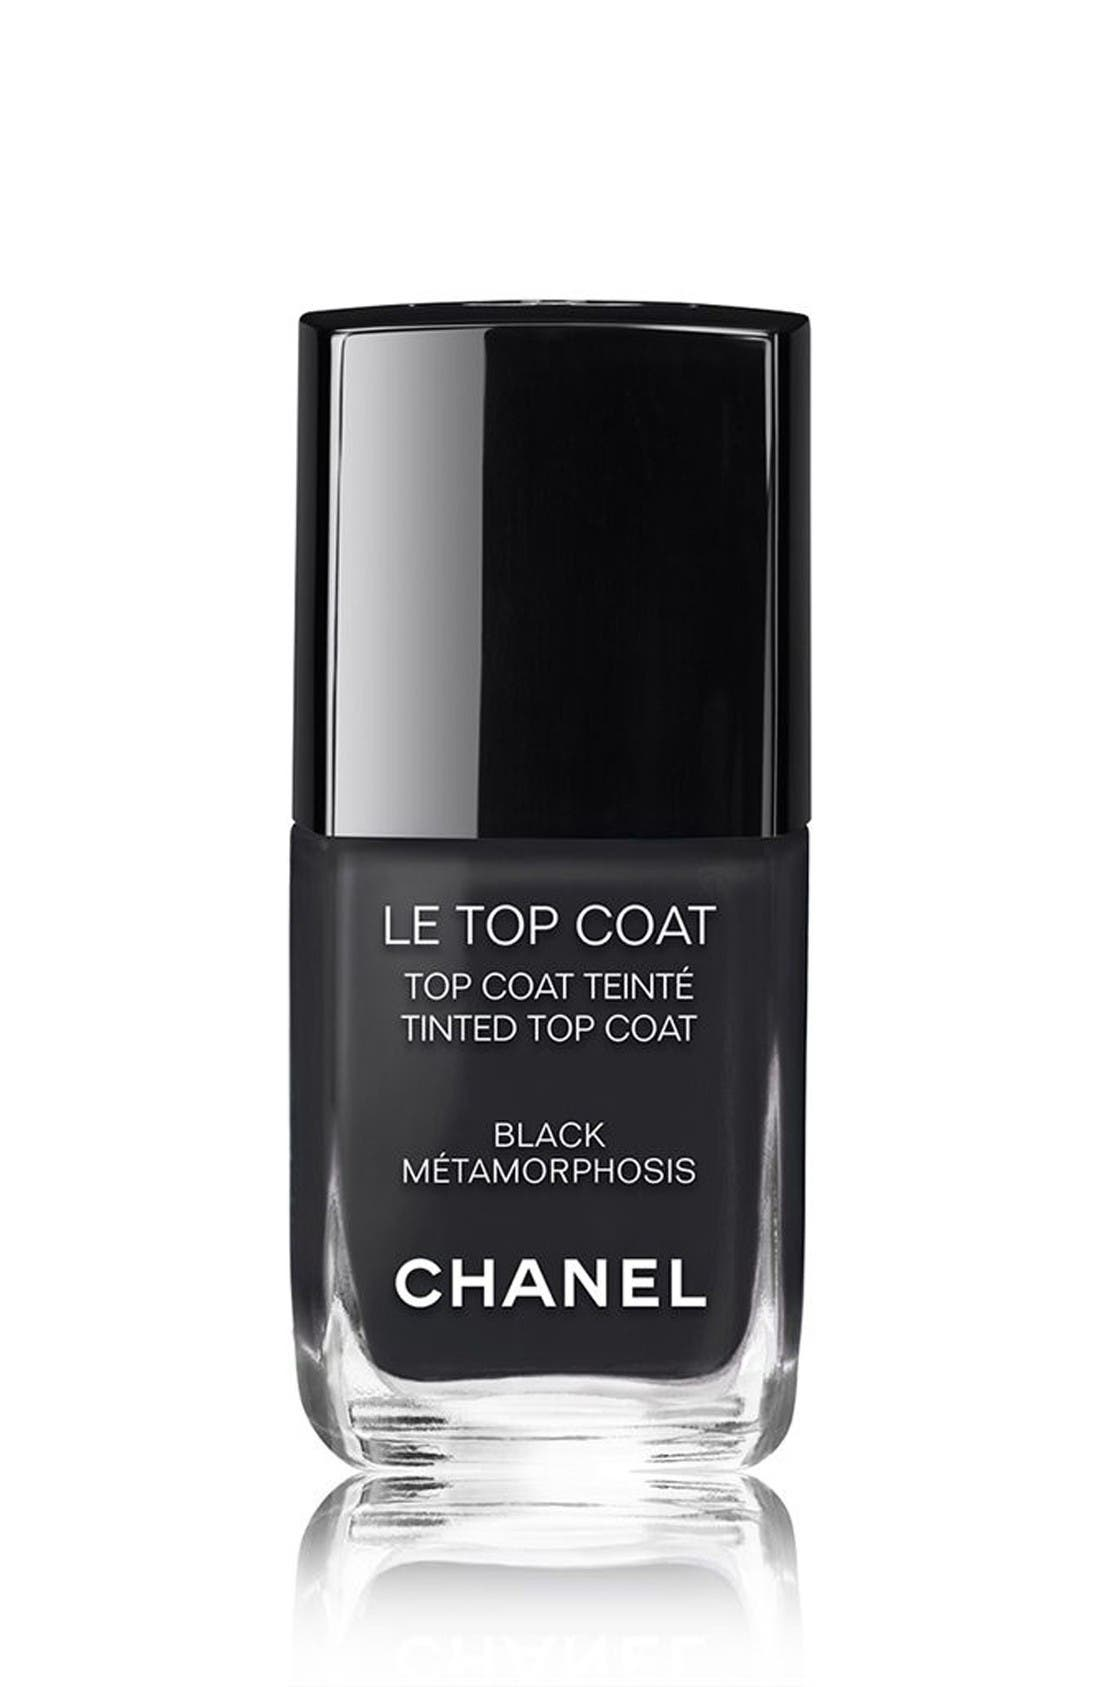 CHANEL LE TOP COAT  Tinted Top Coat (Limited Edition)